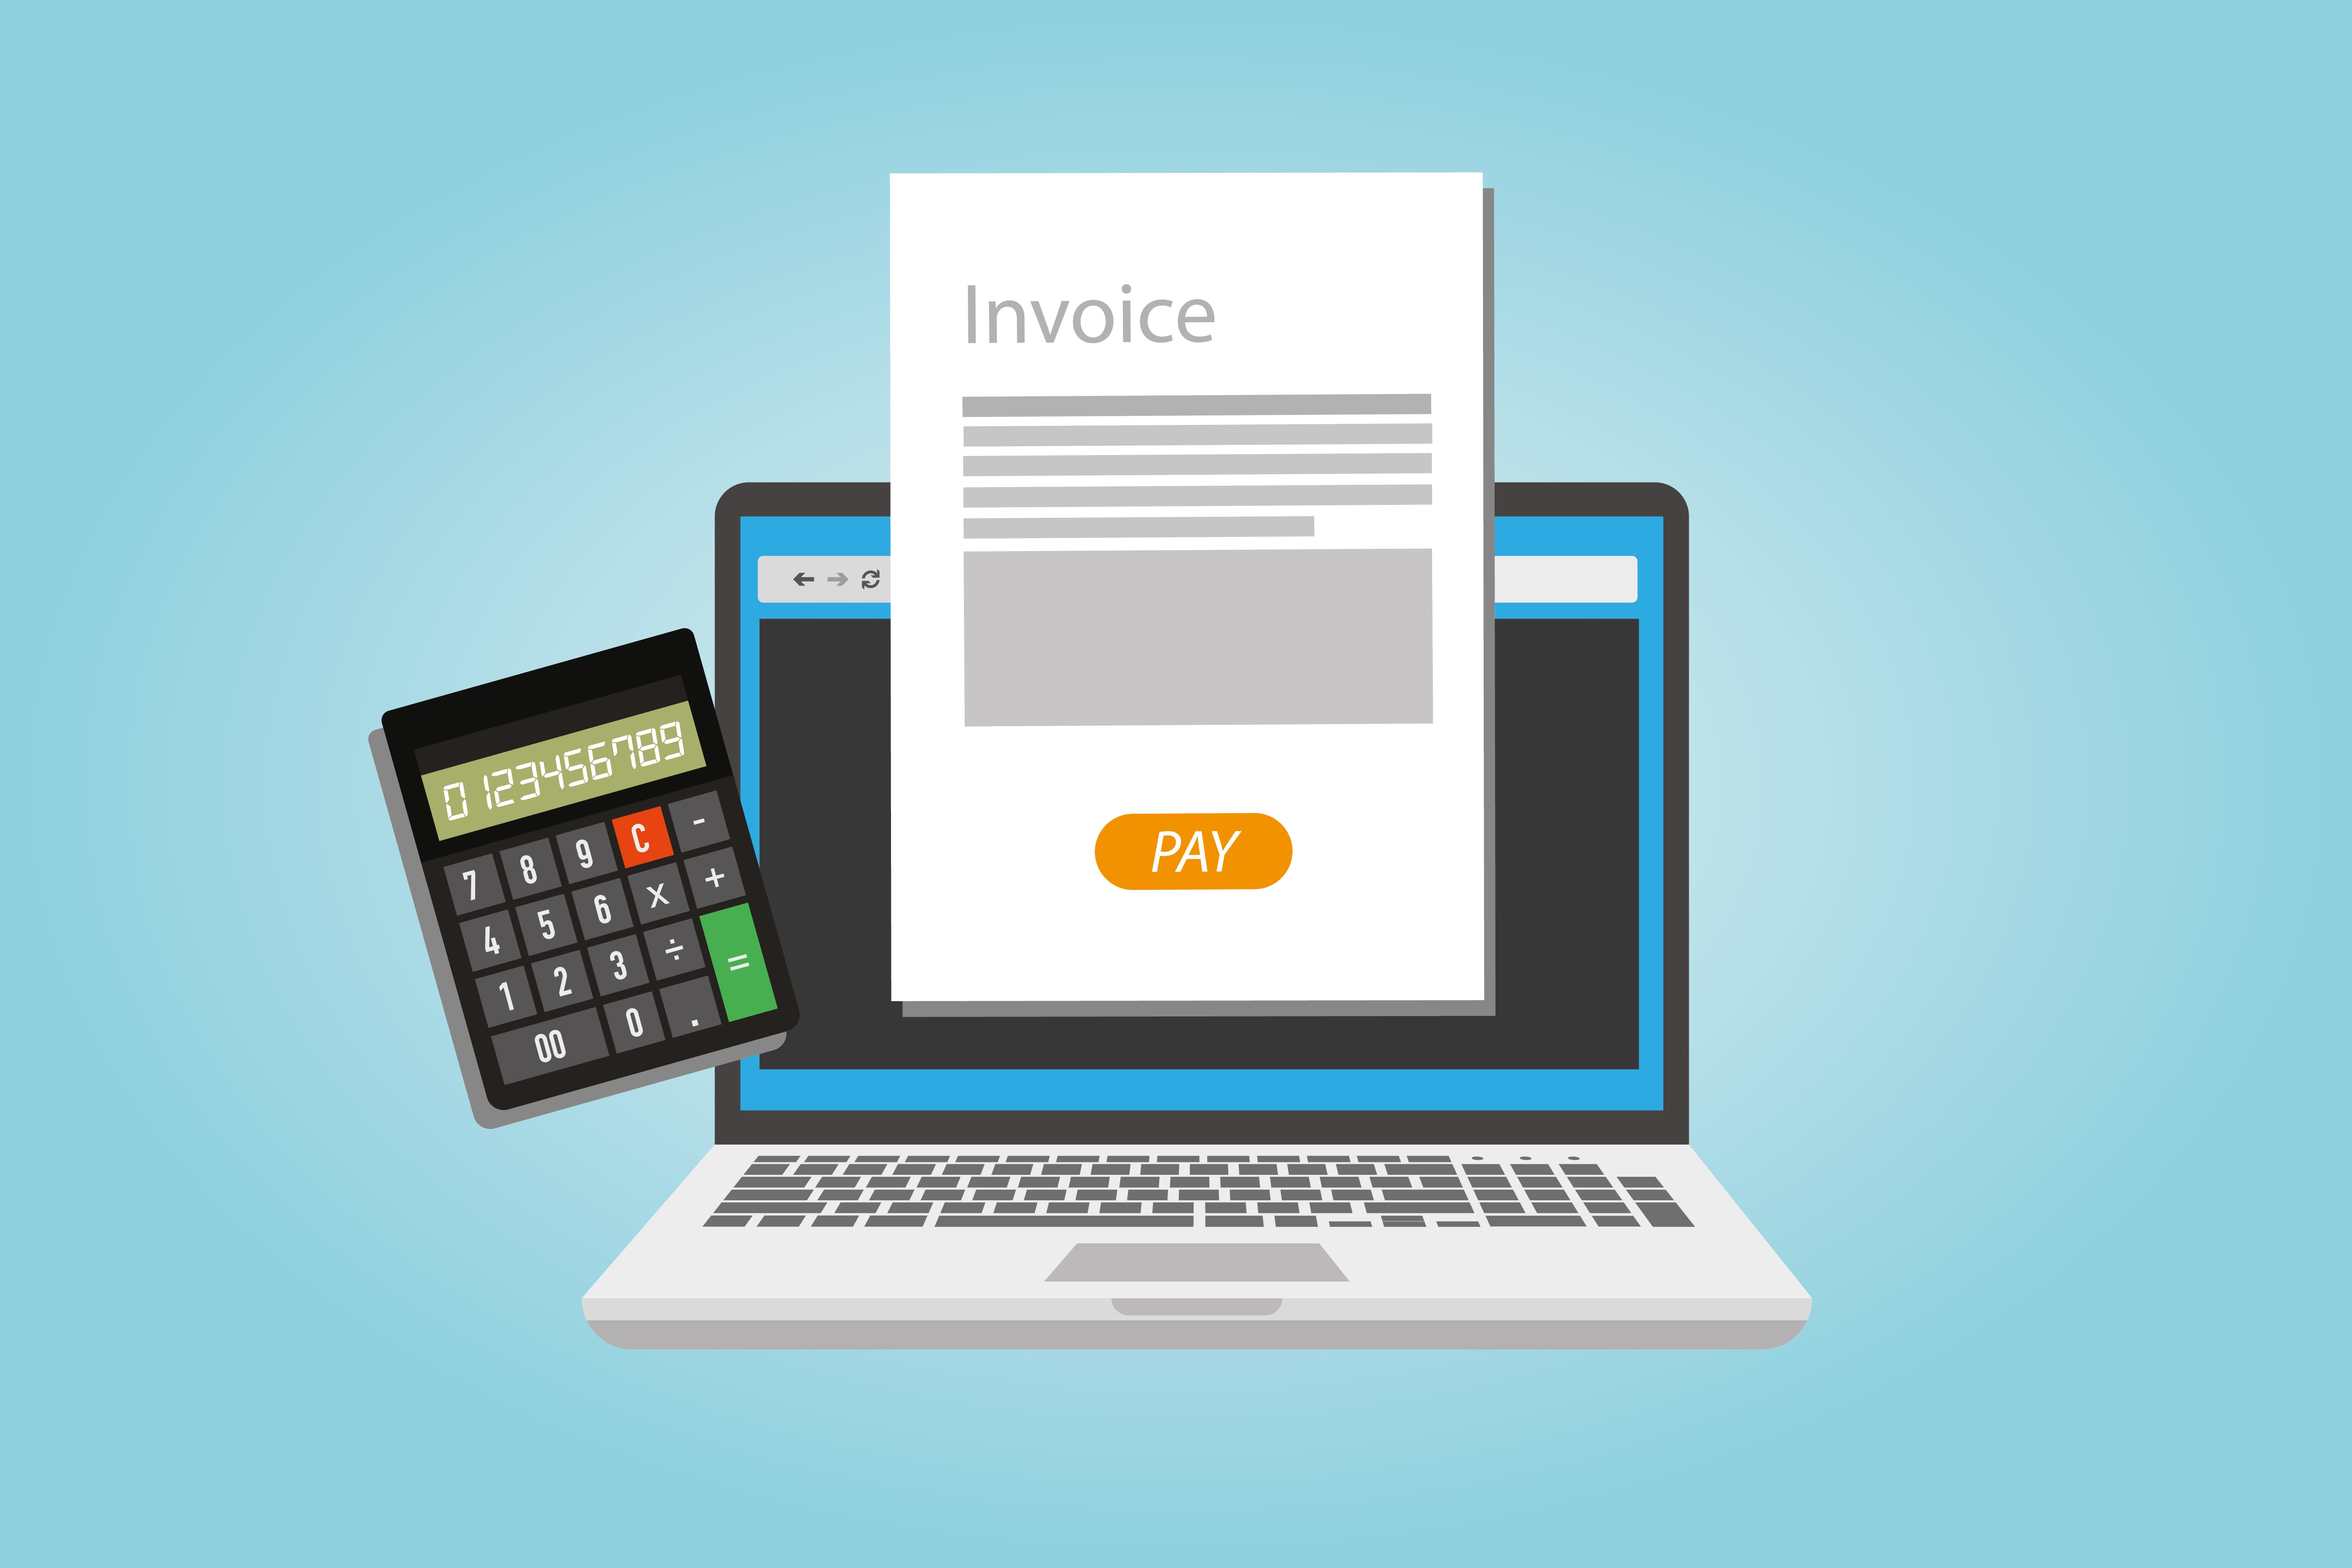 Receipt Copy Sample Gst Invoice  Comprehensive Guide With Invoice Formats  Examples Supermarket Receipt Excel with Free Invoices Word  Baking Receipts Word